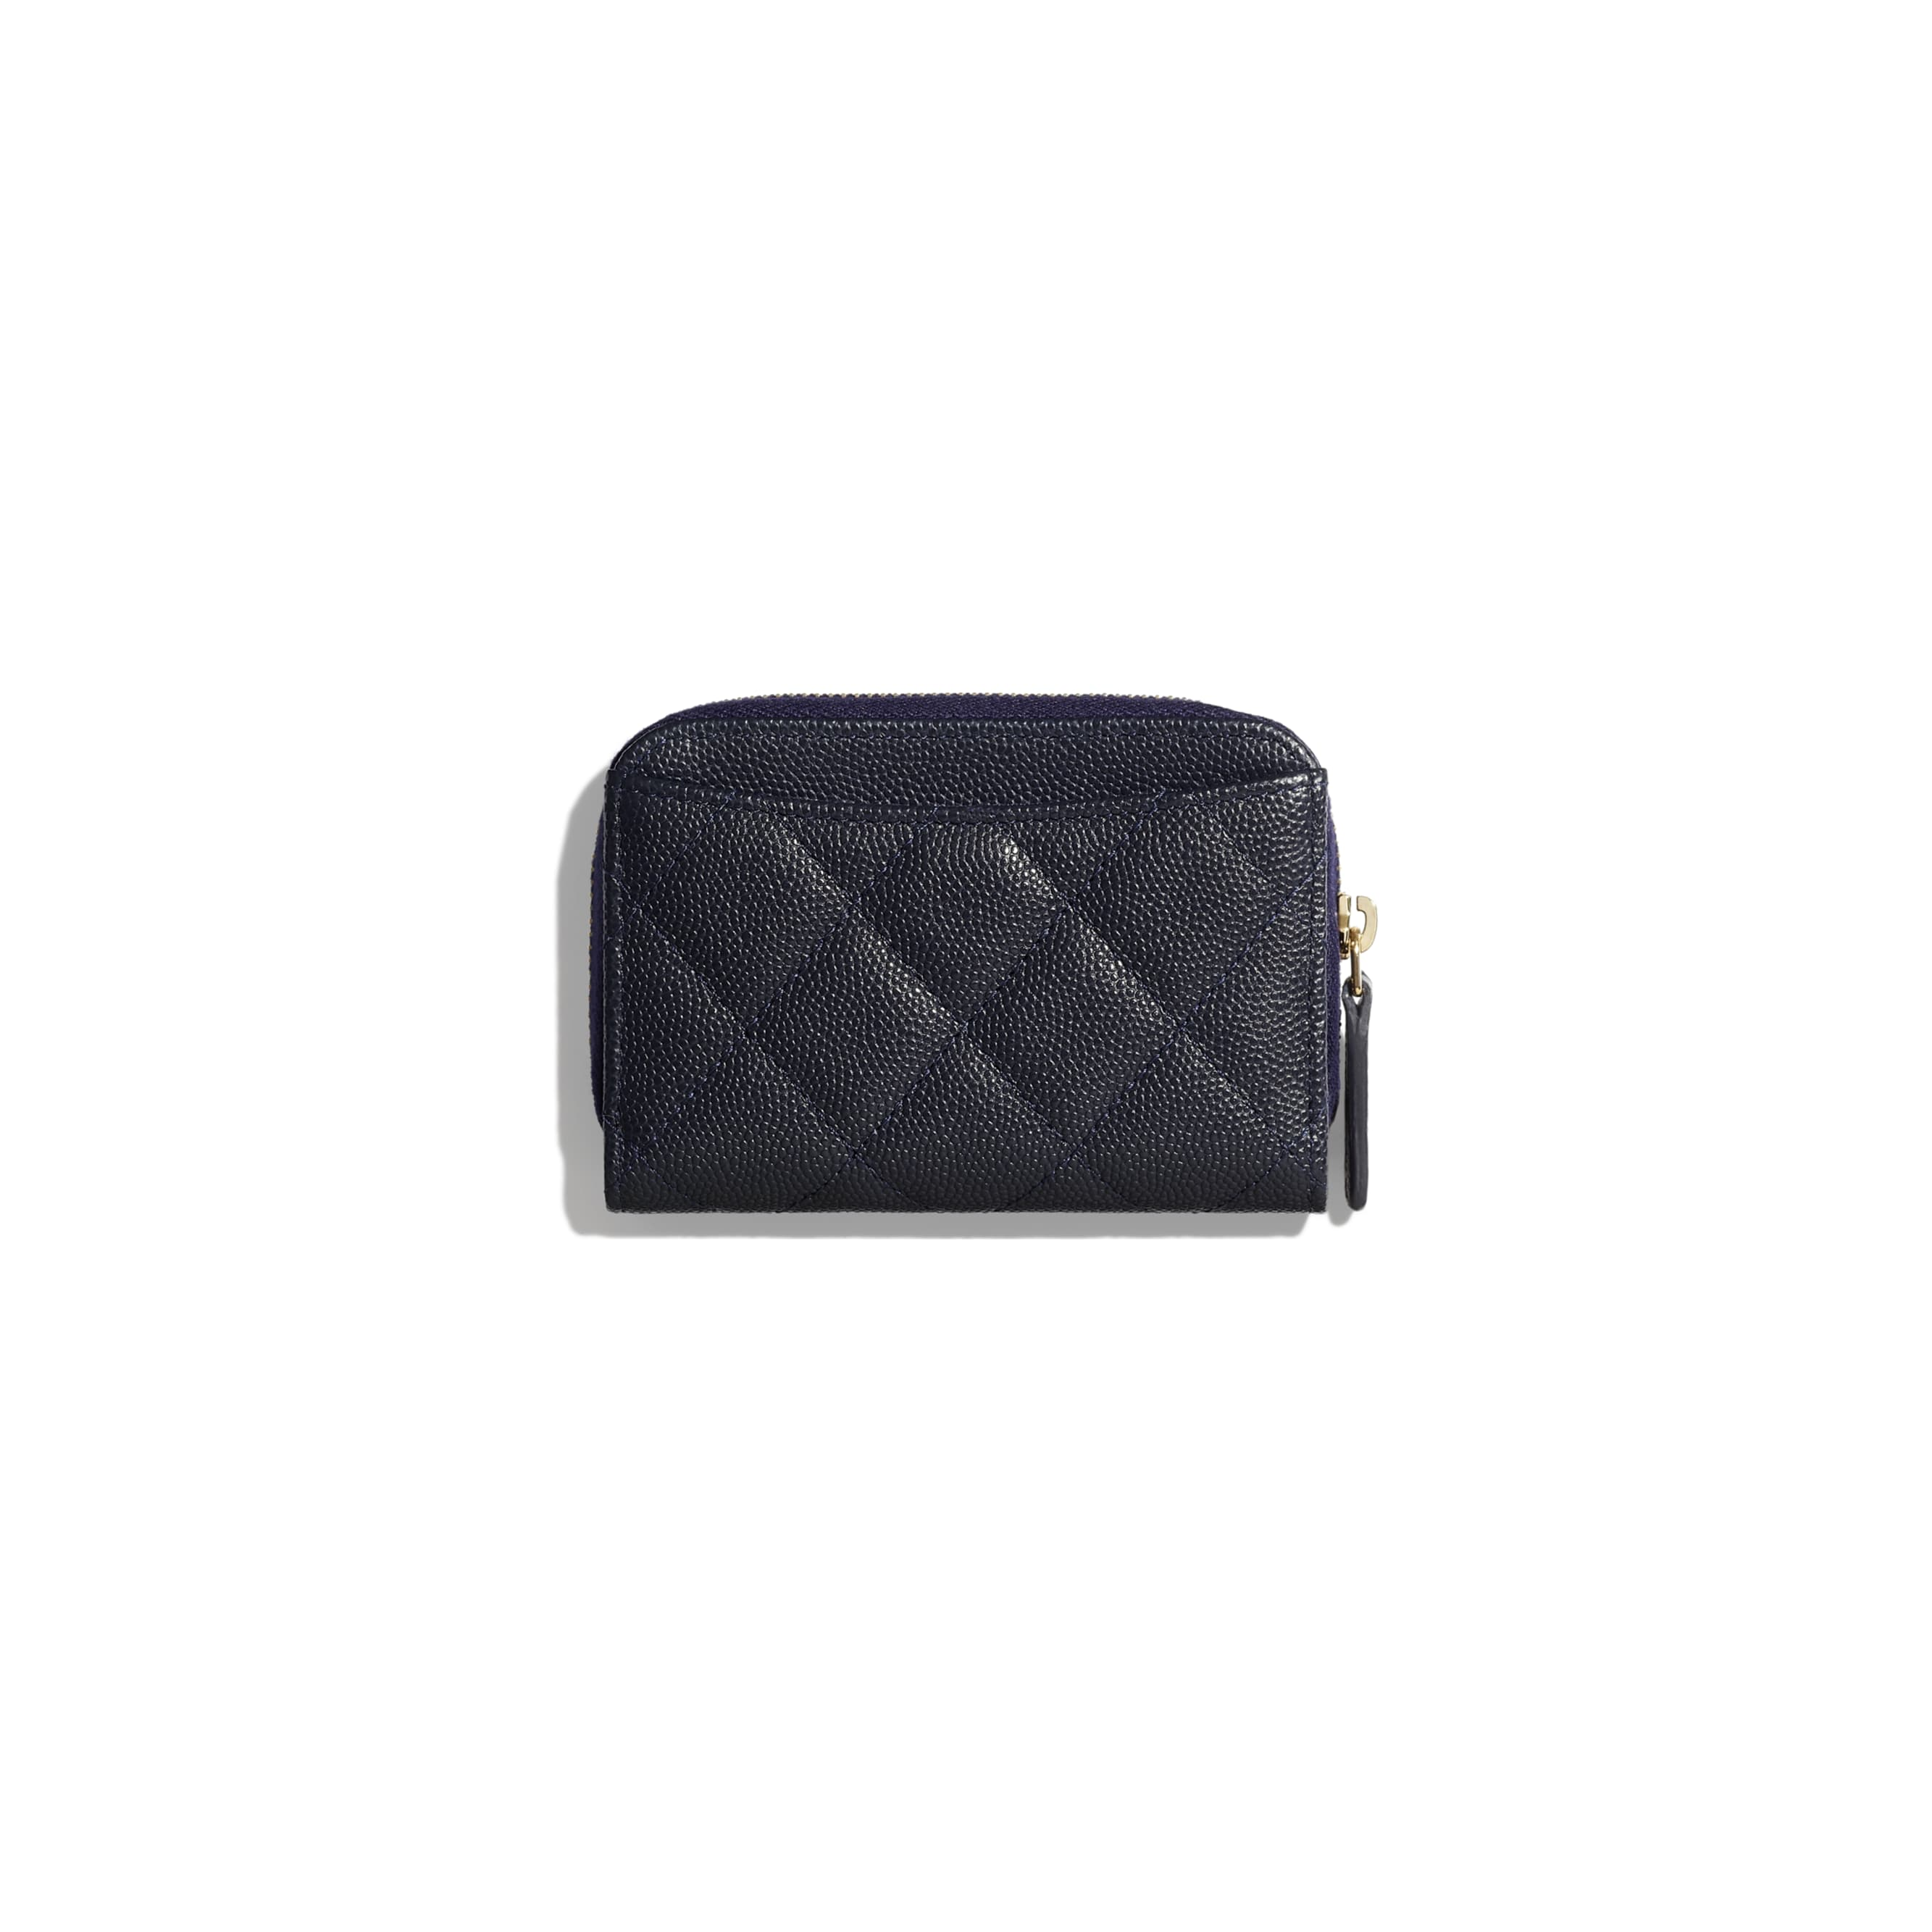 Classic Zipped Coin Purse - Navy Blue - Grained Calfskin & Gold-Tone Metal - Alternative view - see standard sized version